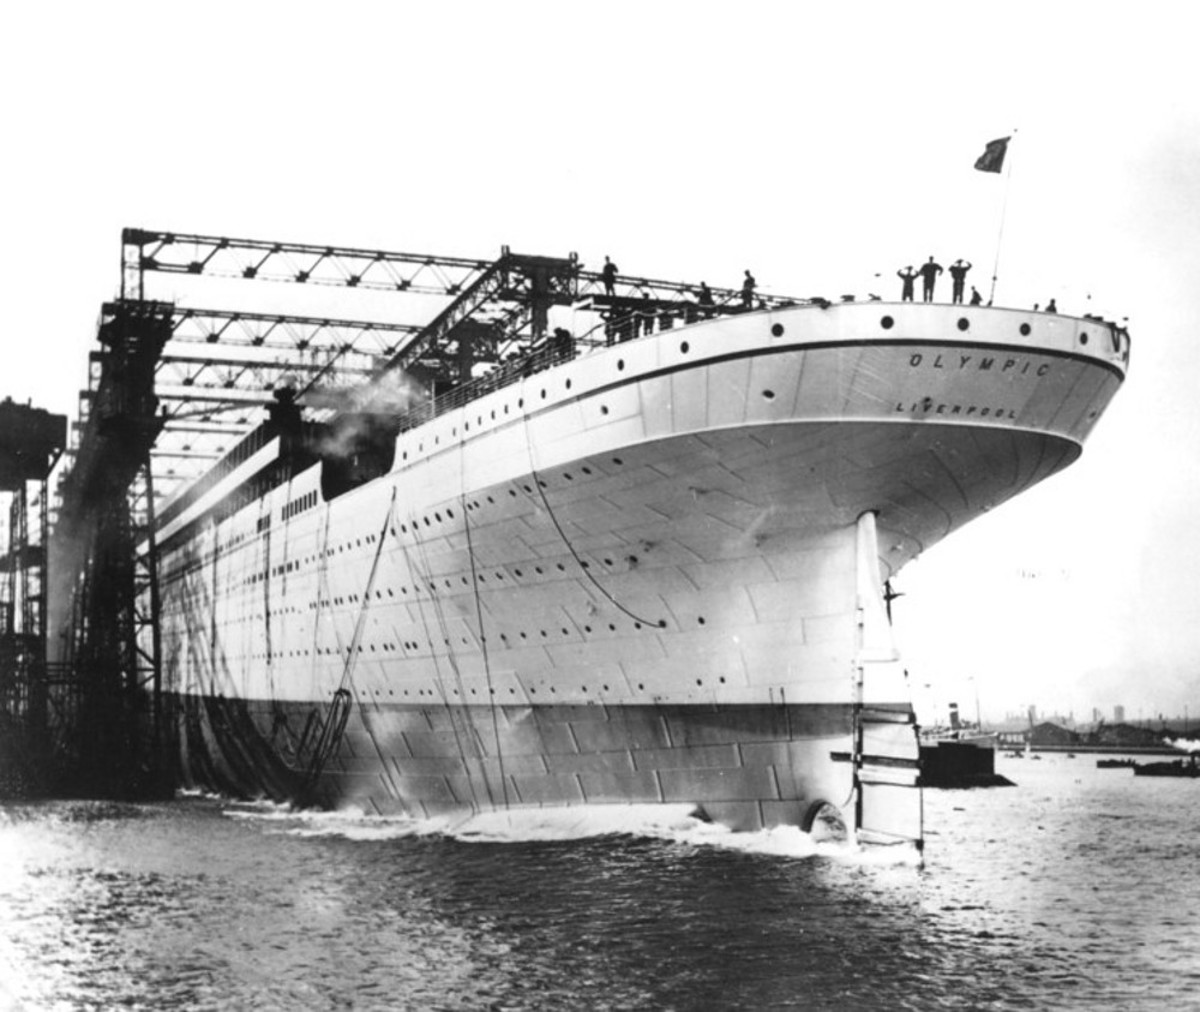 The launch of Olympic. Traditional with lead ships of a class, the hull was painted a light grey so that her features would stand out in photographs.